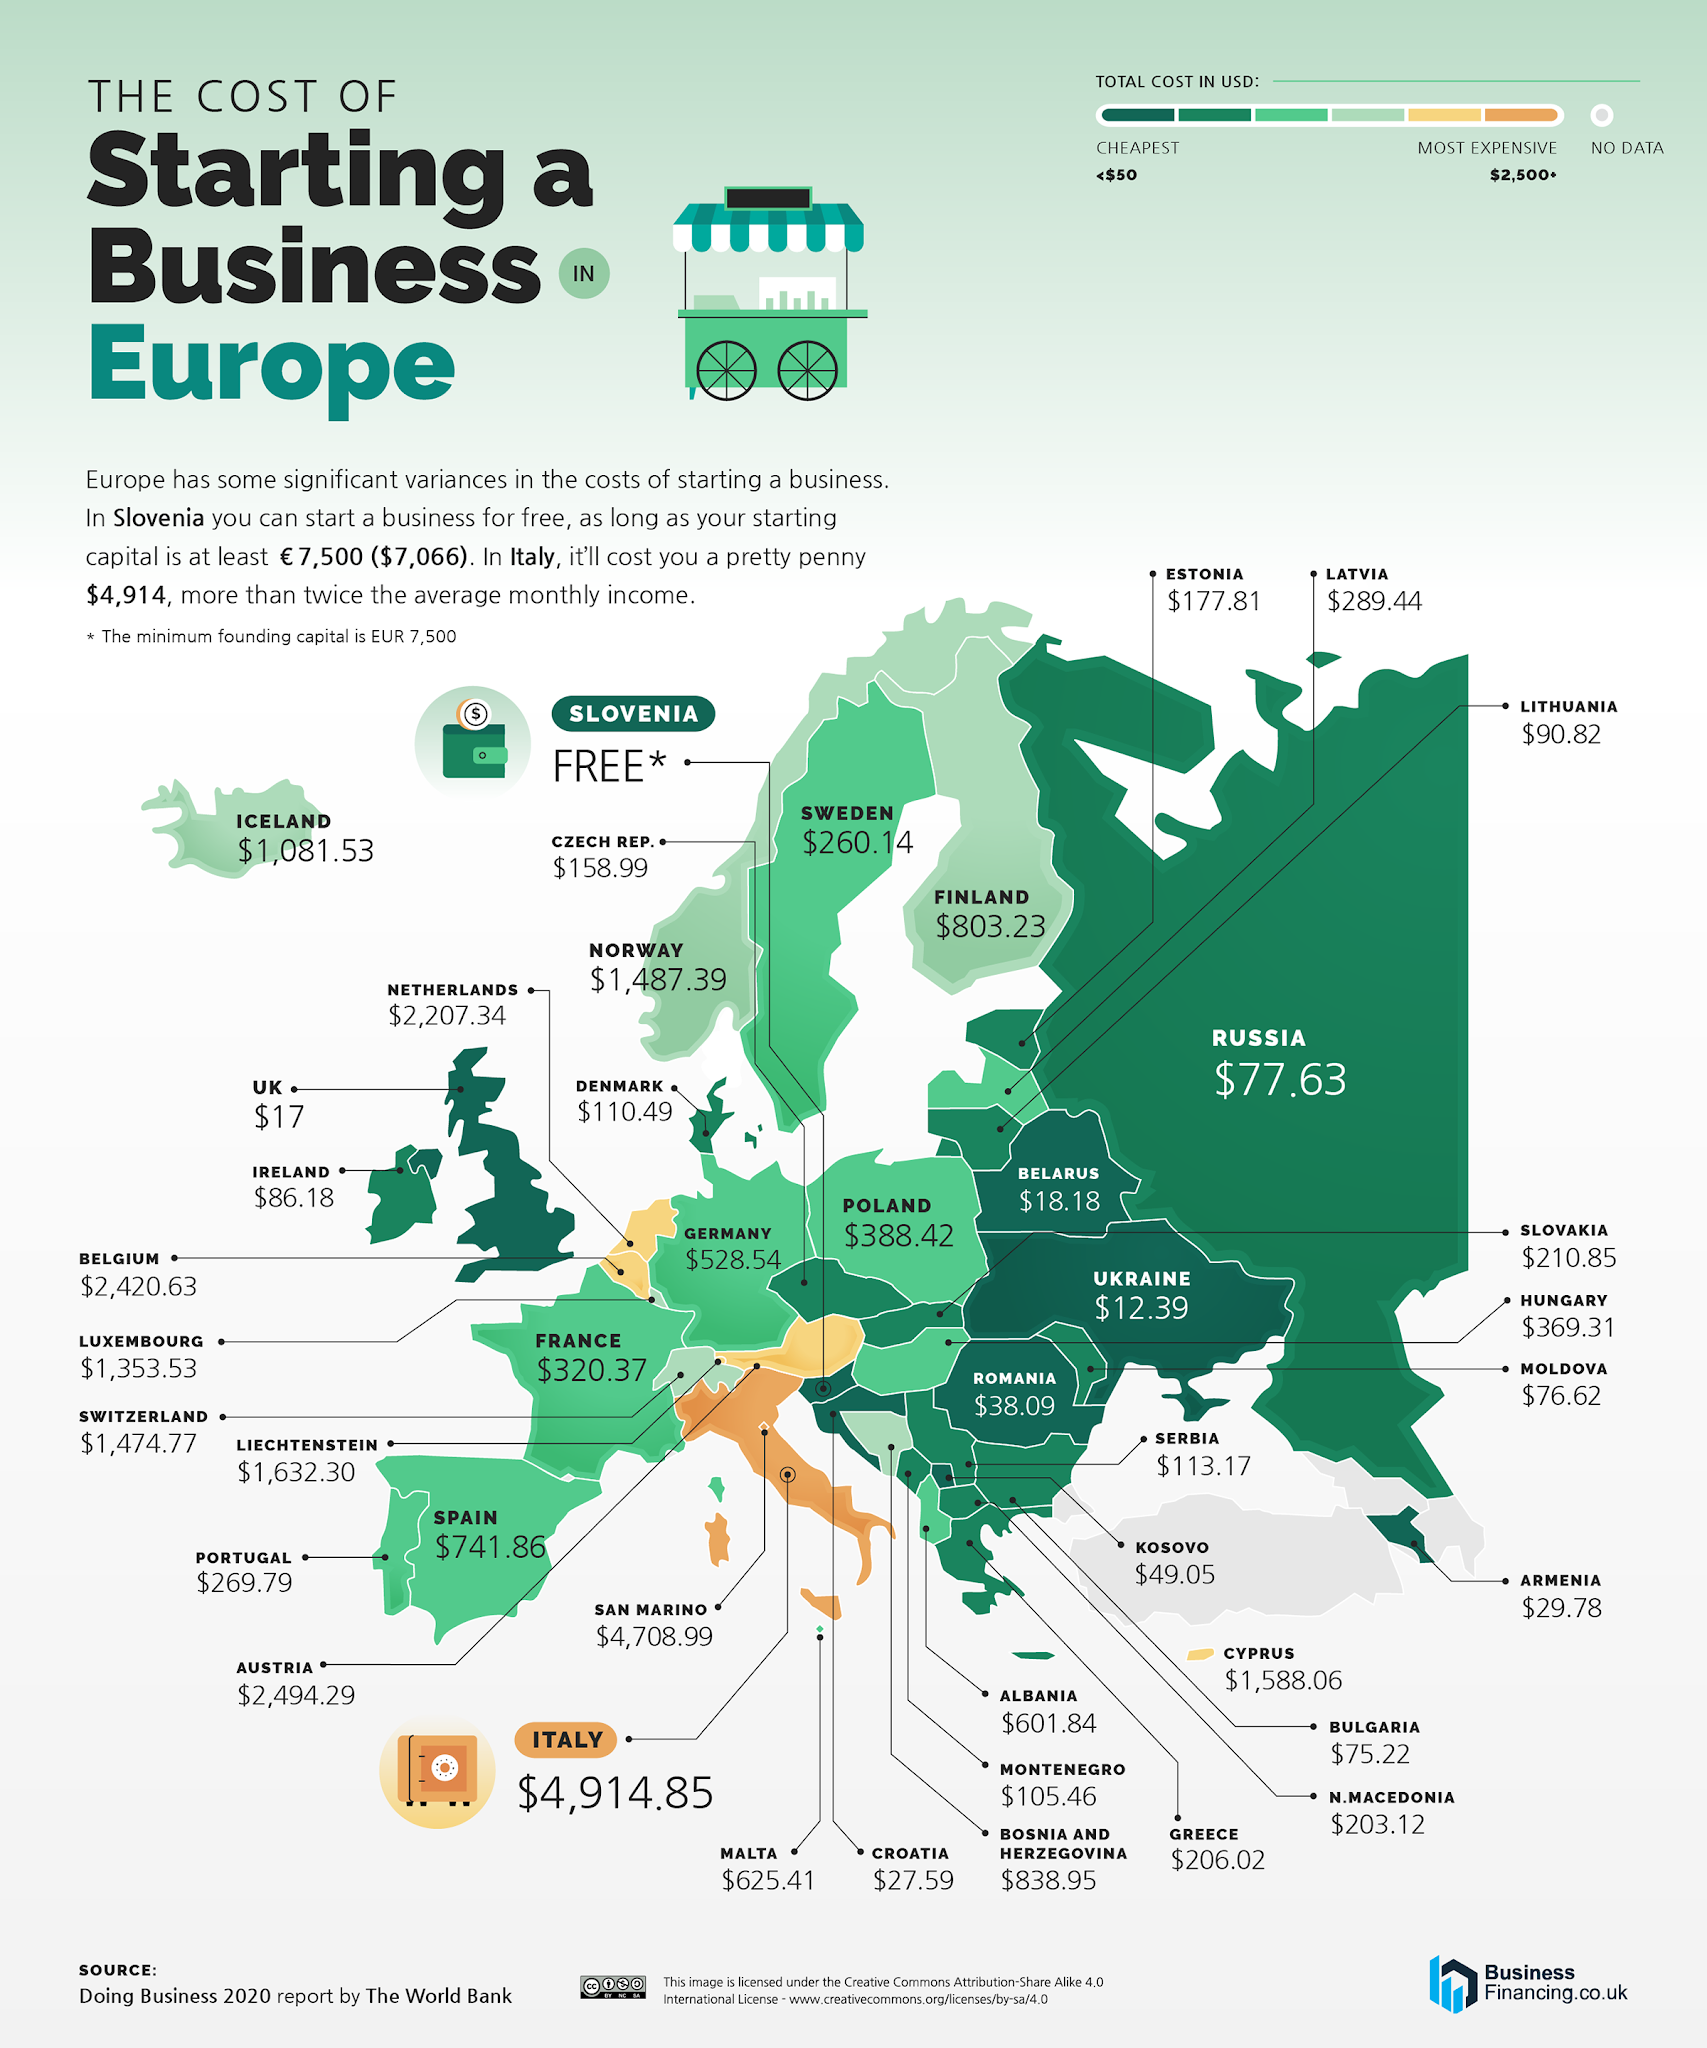 The Cost of Starting a Business in Europe